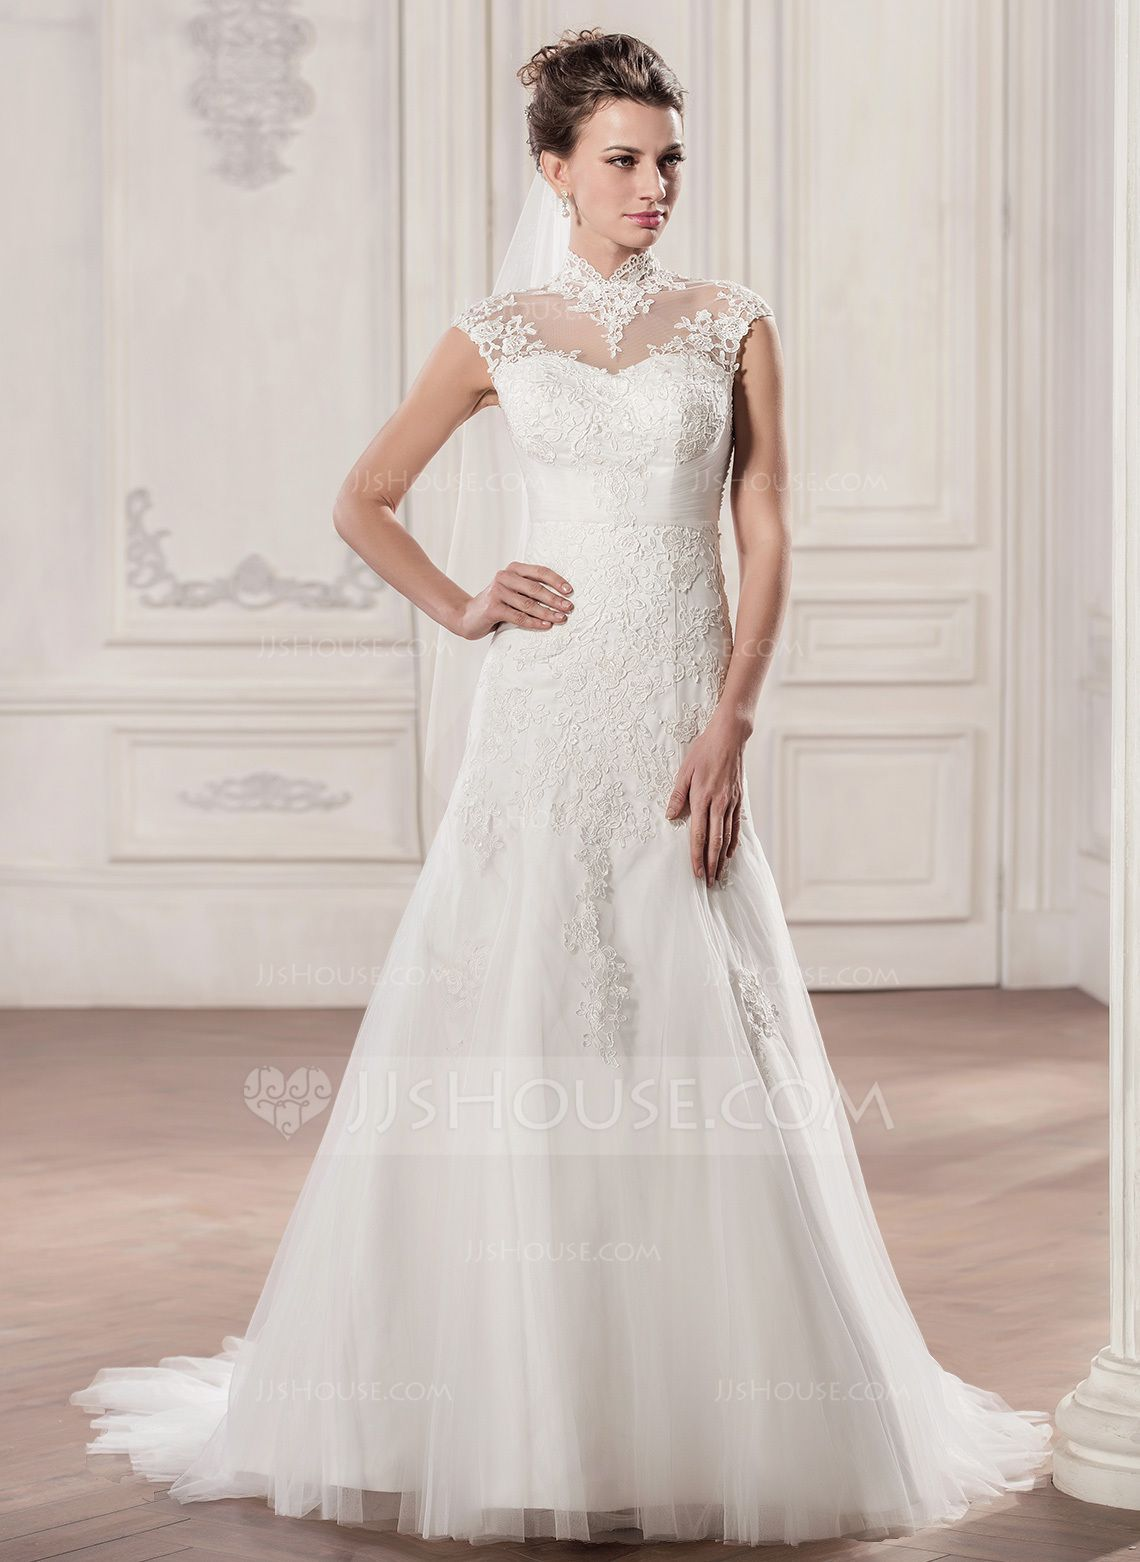 Alineprincess high neck court train tulle lace wedding dress with